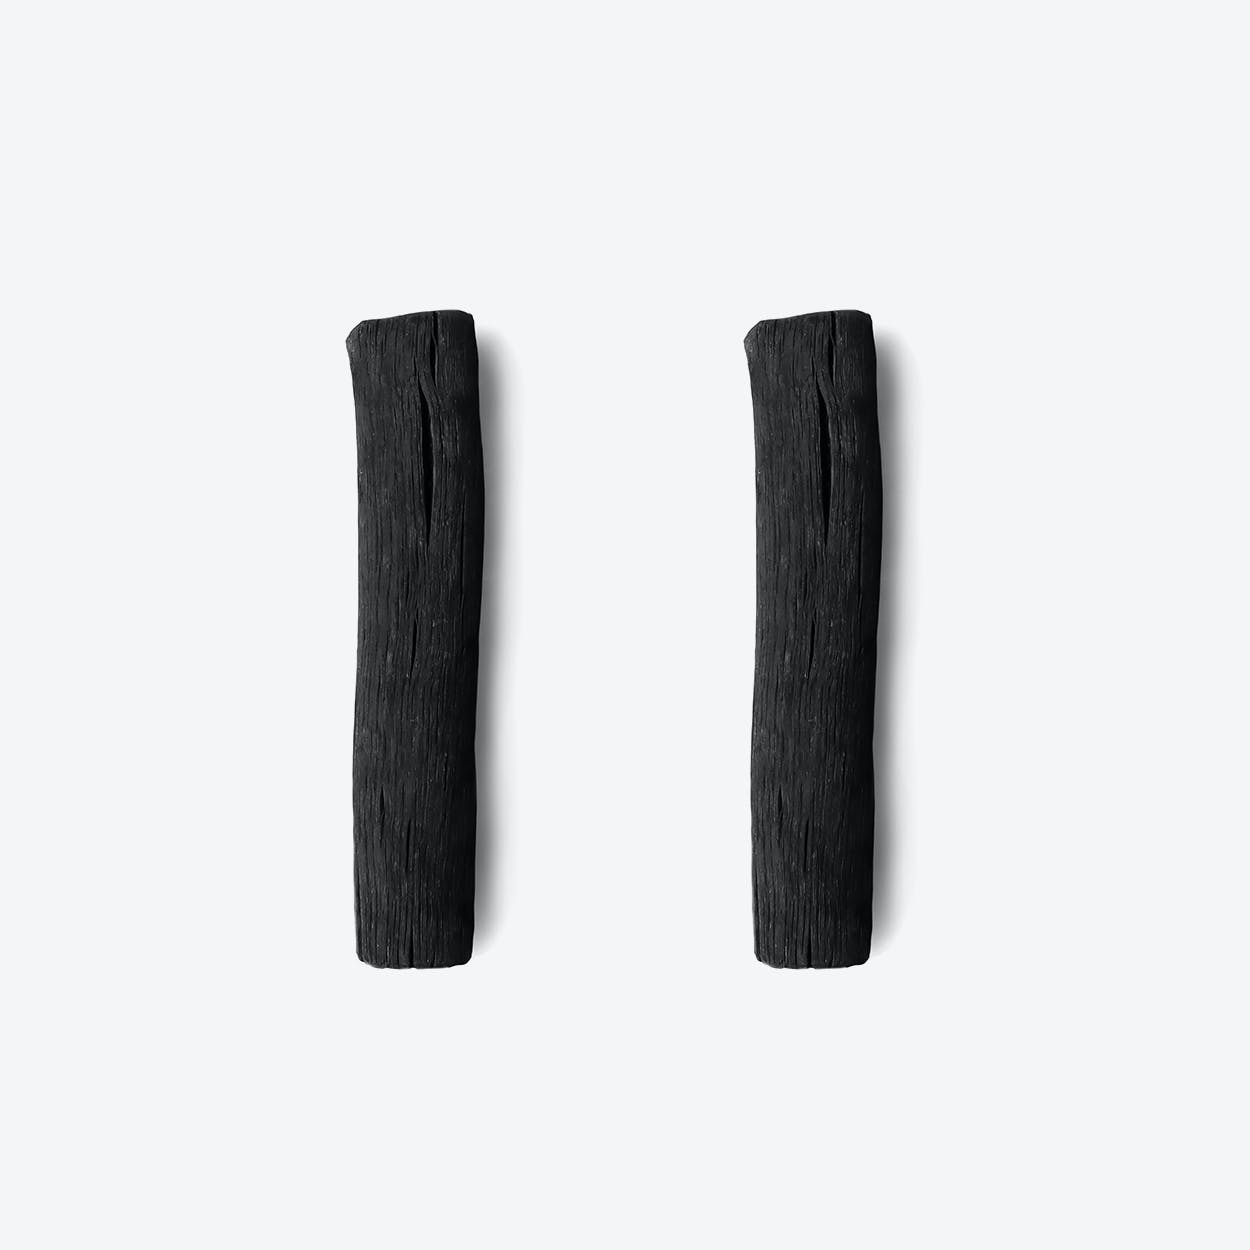 Charcoal Water Filter - 2 pack